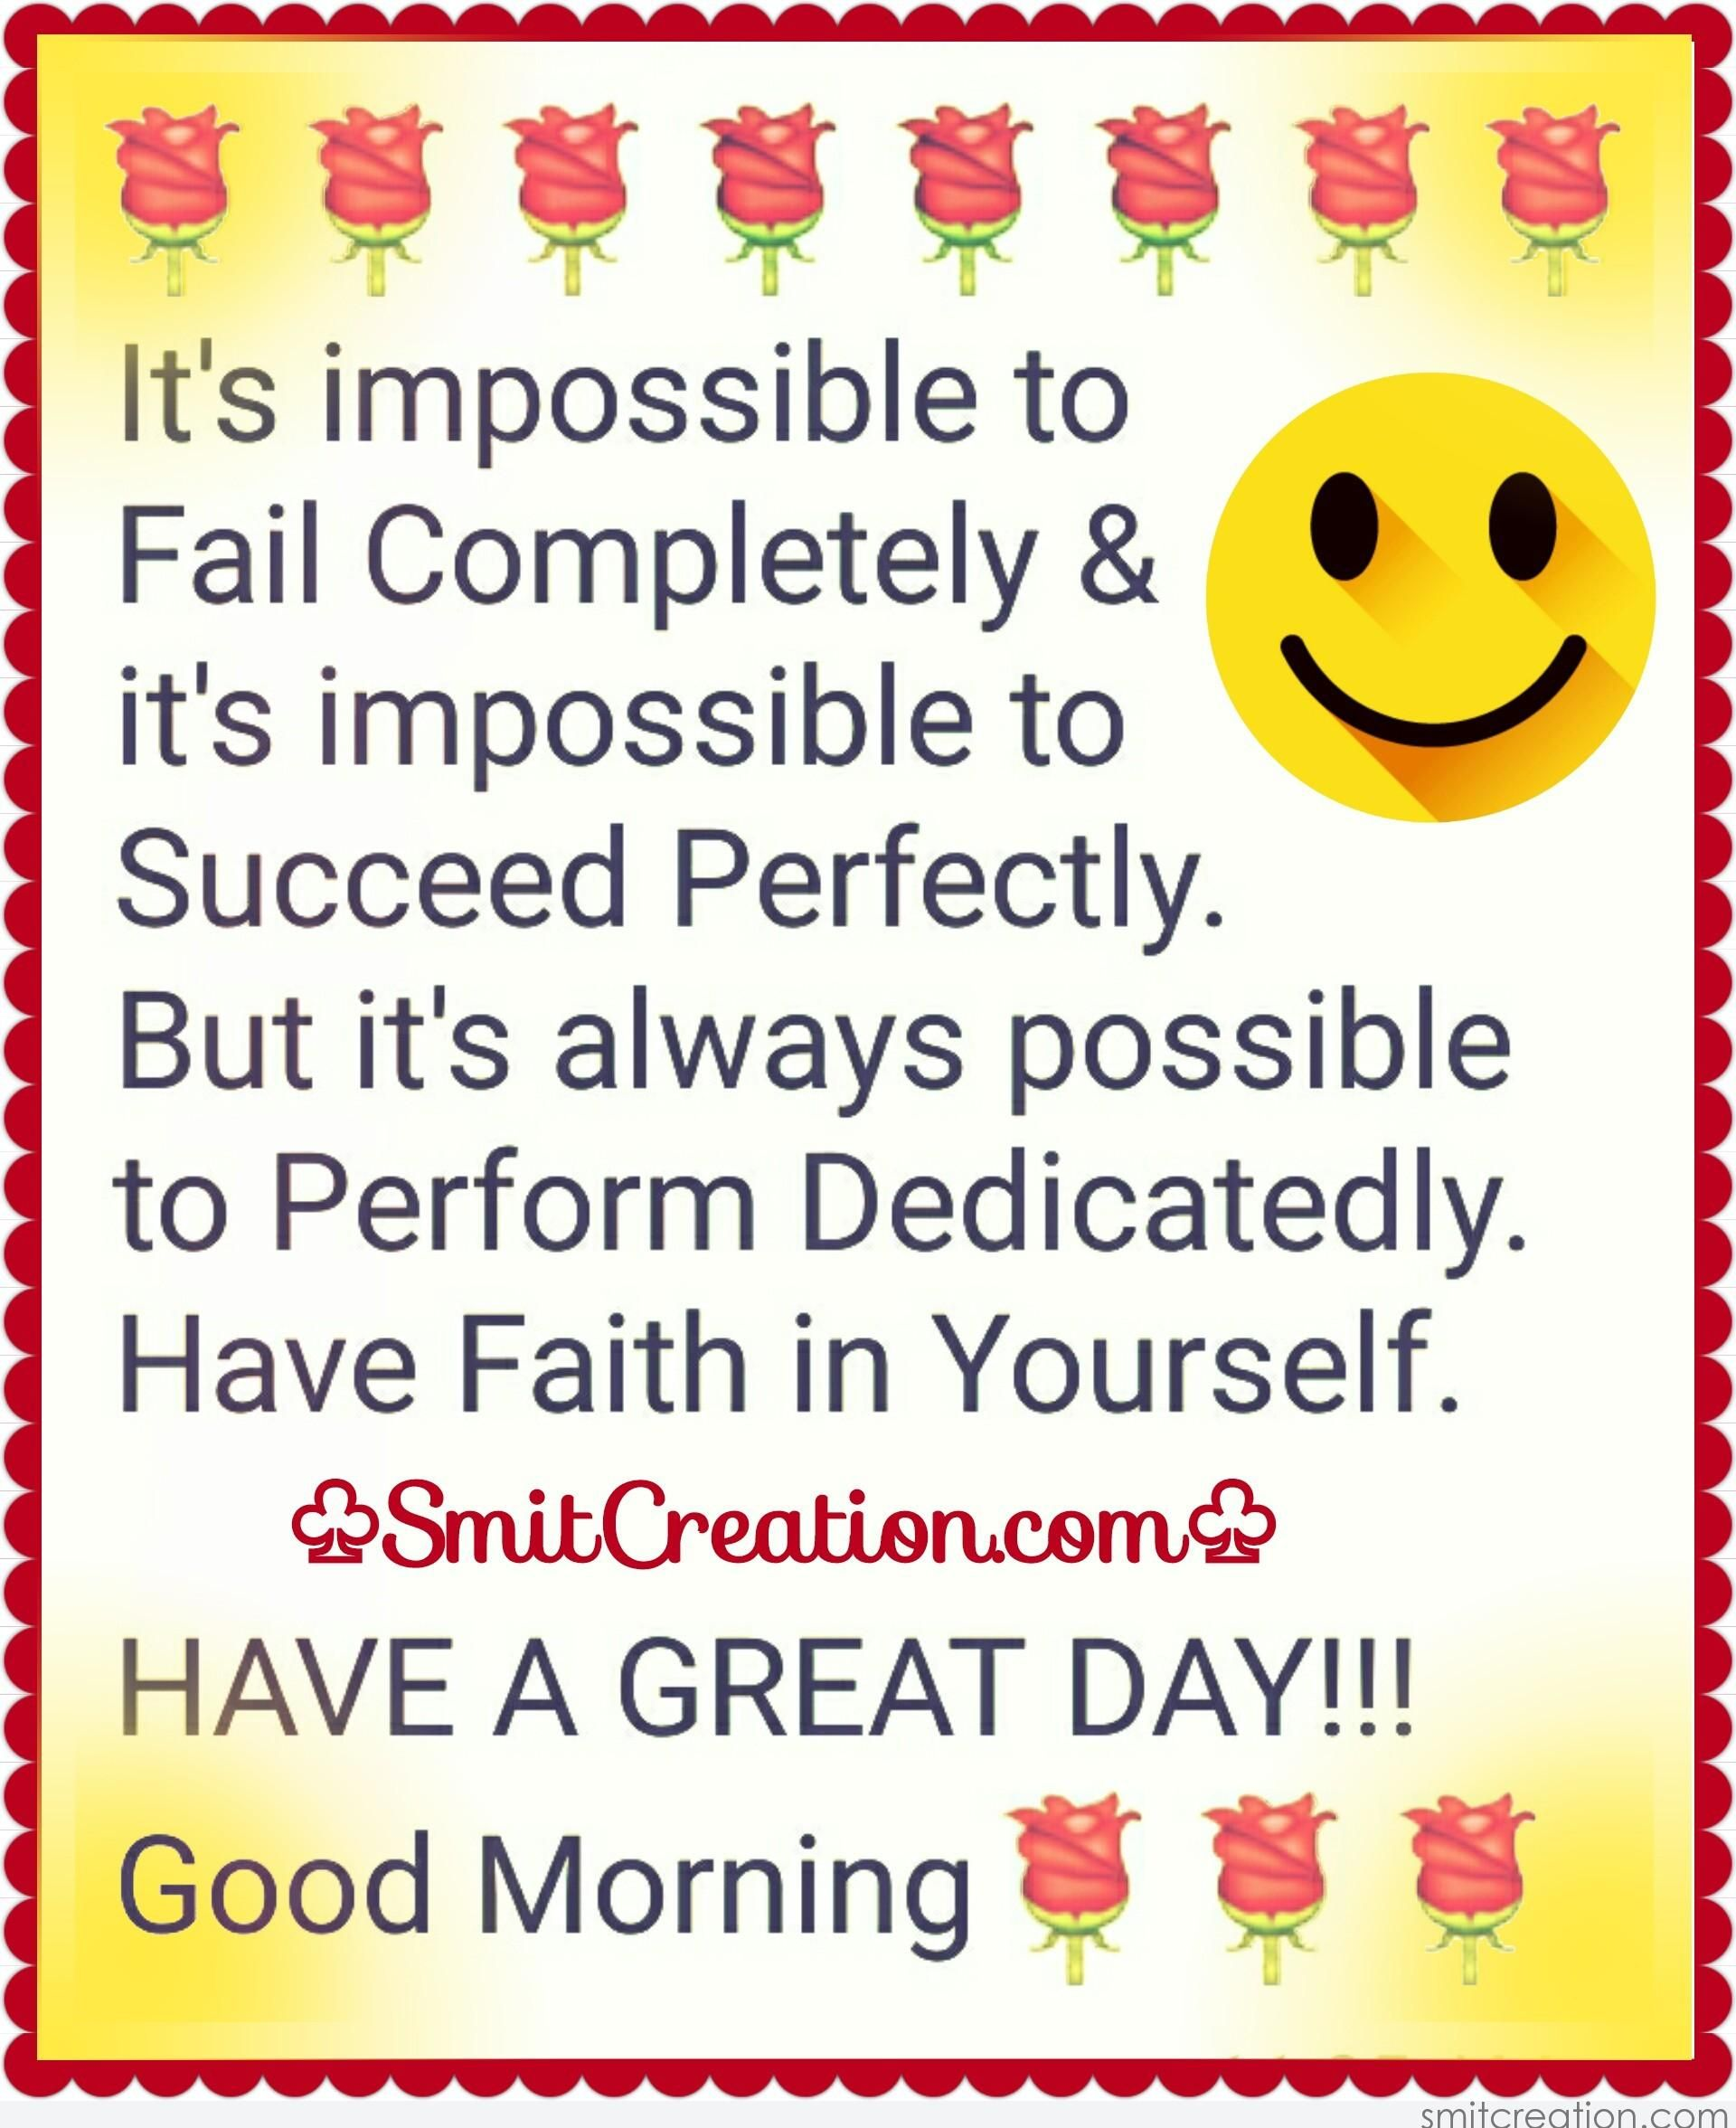 Inspirational Day Quotes: GOOD MORNING HAVE A GREAT DAY!!! - SmitCreation.com